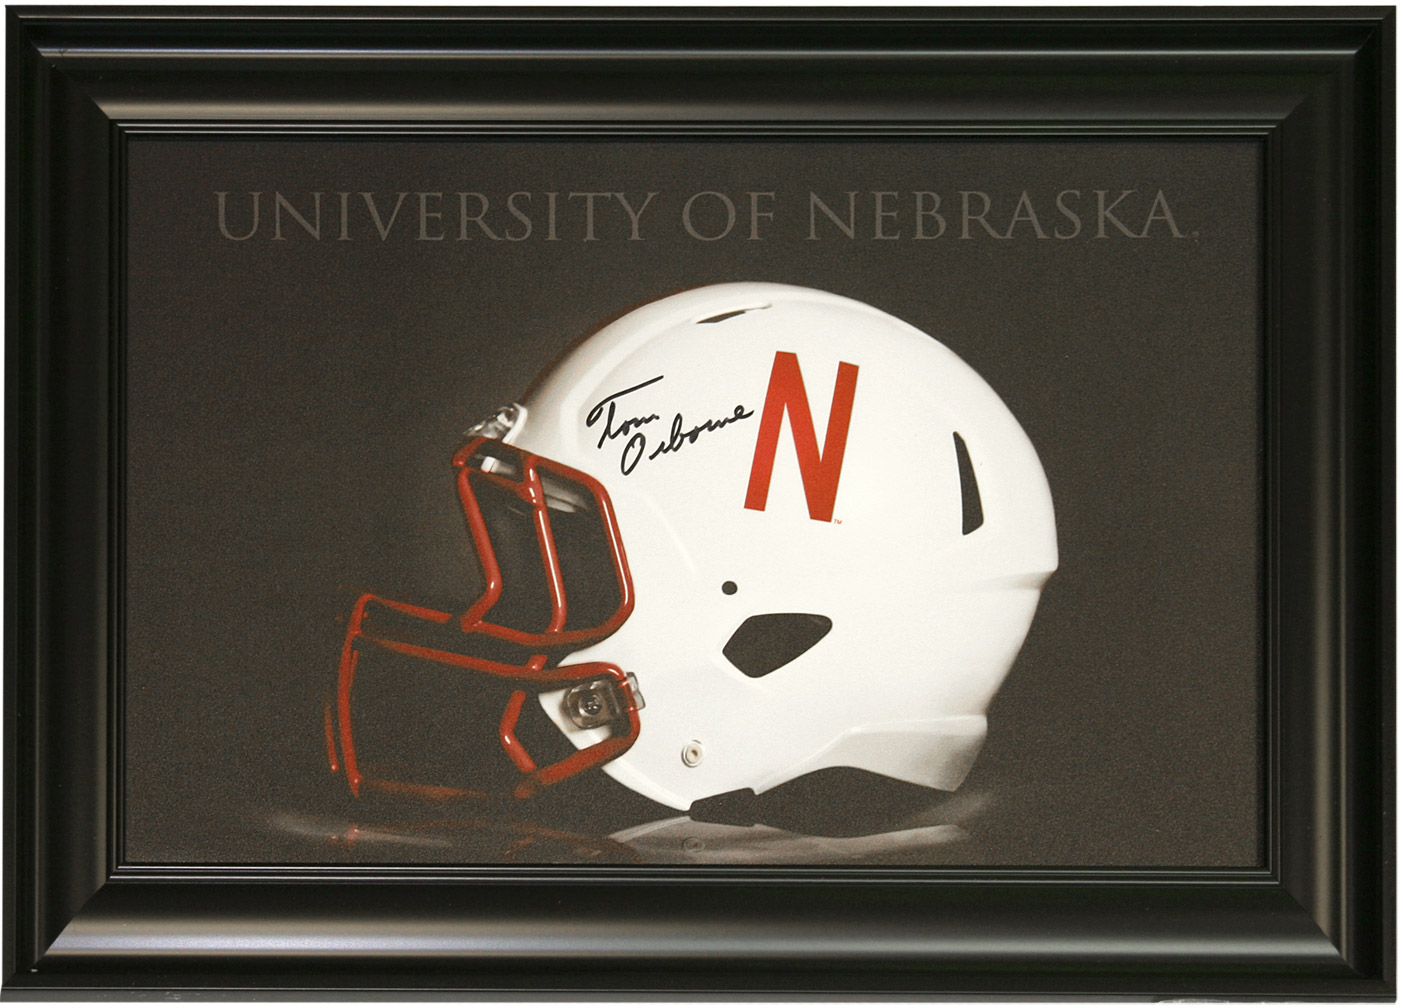 Framed Autographed Speed Helmet Print Nebraska Cornhuskers, husker football, nebraska cornhuskers merchandise, husker merchandise, nebraska merchandise, husker memorabilia, husker autographed, nebraska cornhuskers autographed, Tom Osborne autographed, Tom Osborne signed, Tom Osborne collectible, Tom Osborne, nebraska cornhuskers memorabilia, nebraska cornhuskers collectible,